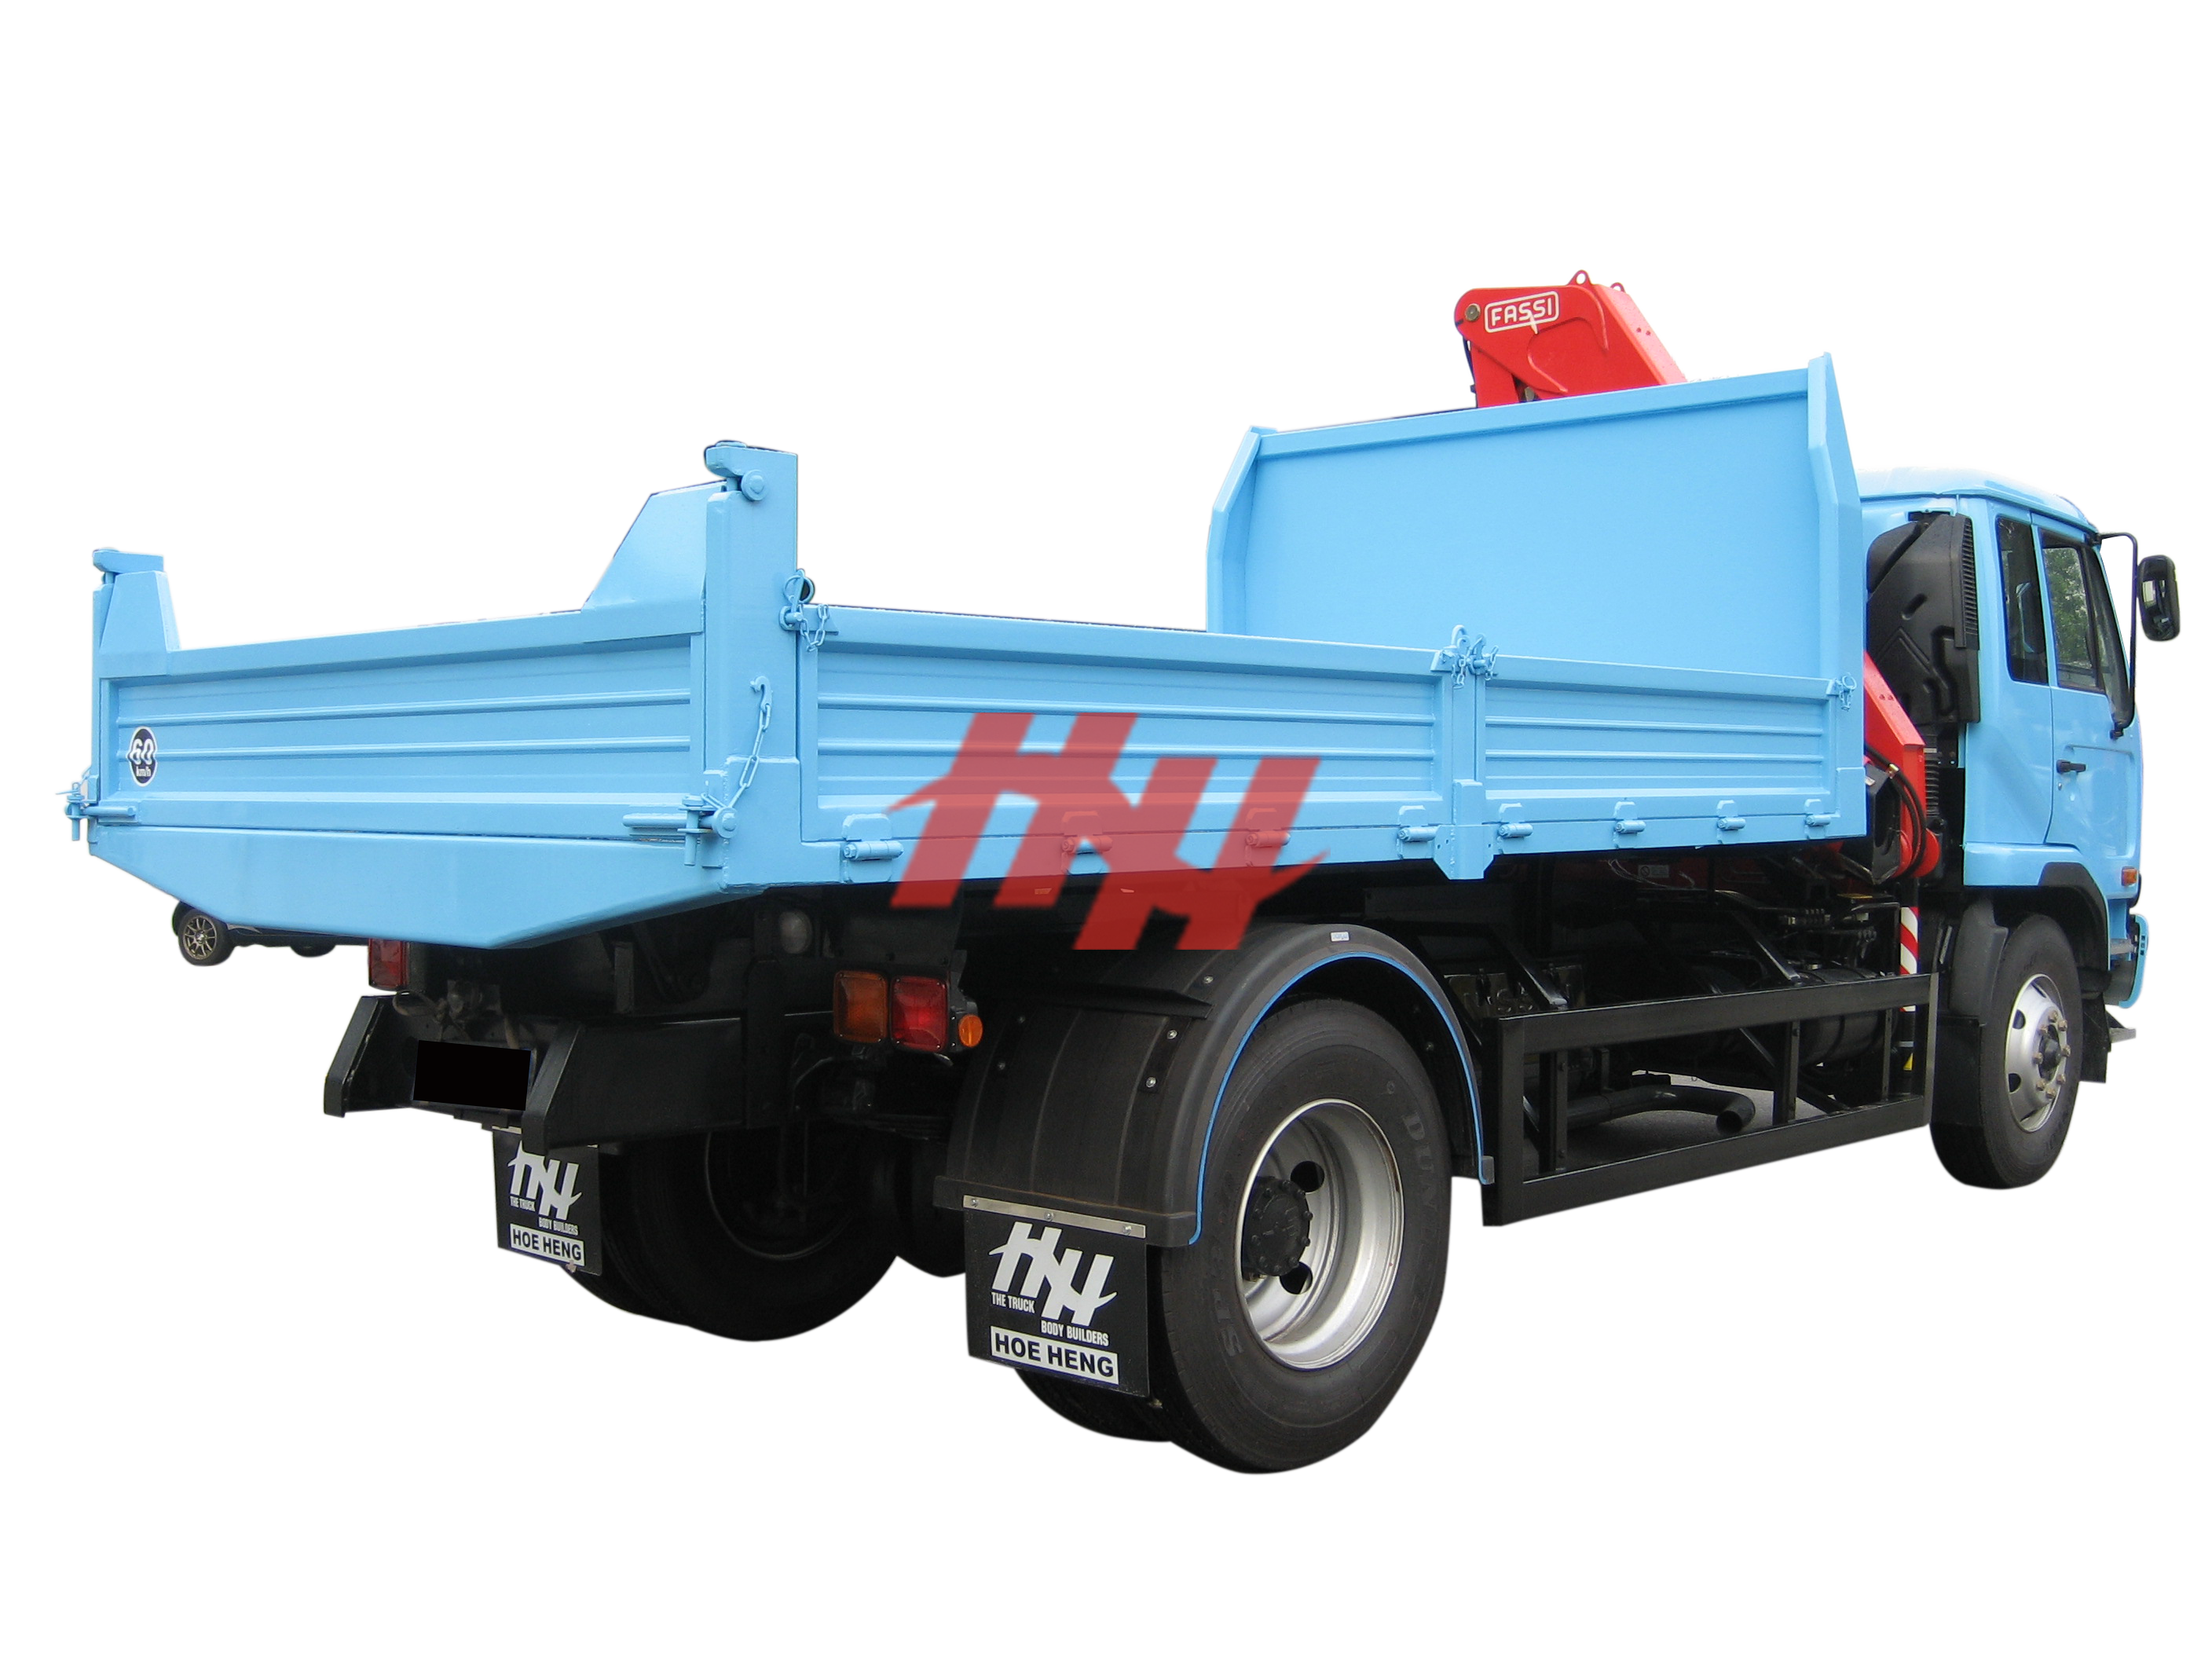 18fts machine weld drop side tipper body  with krm 160 hoist and mounted crane edit